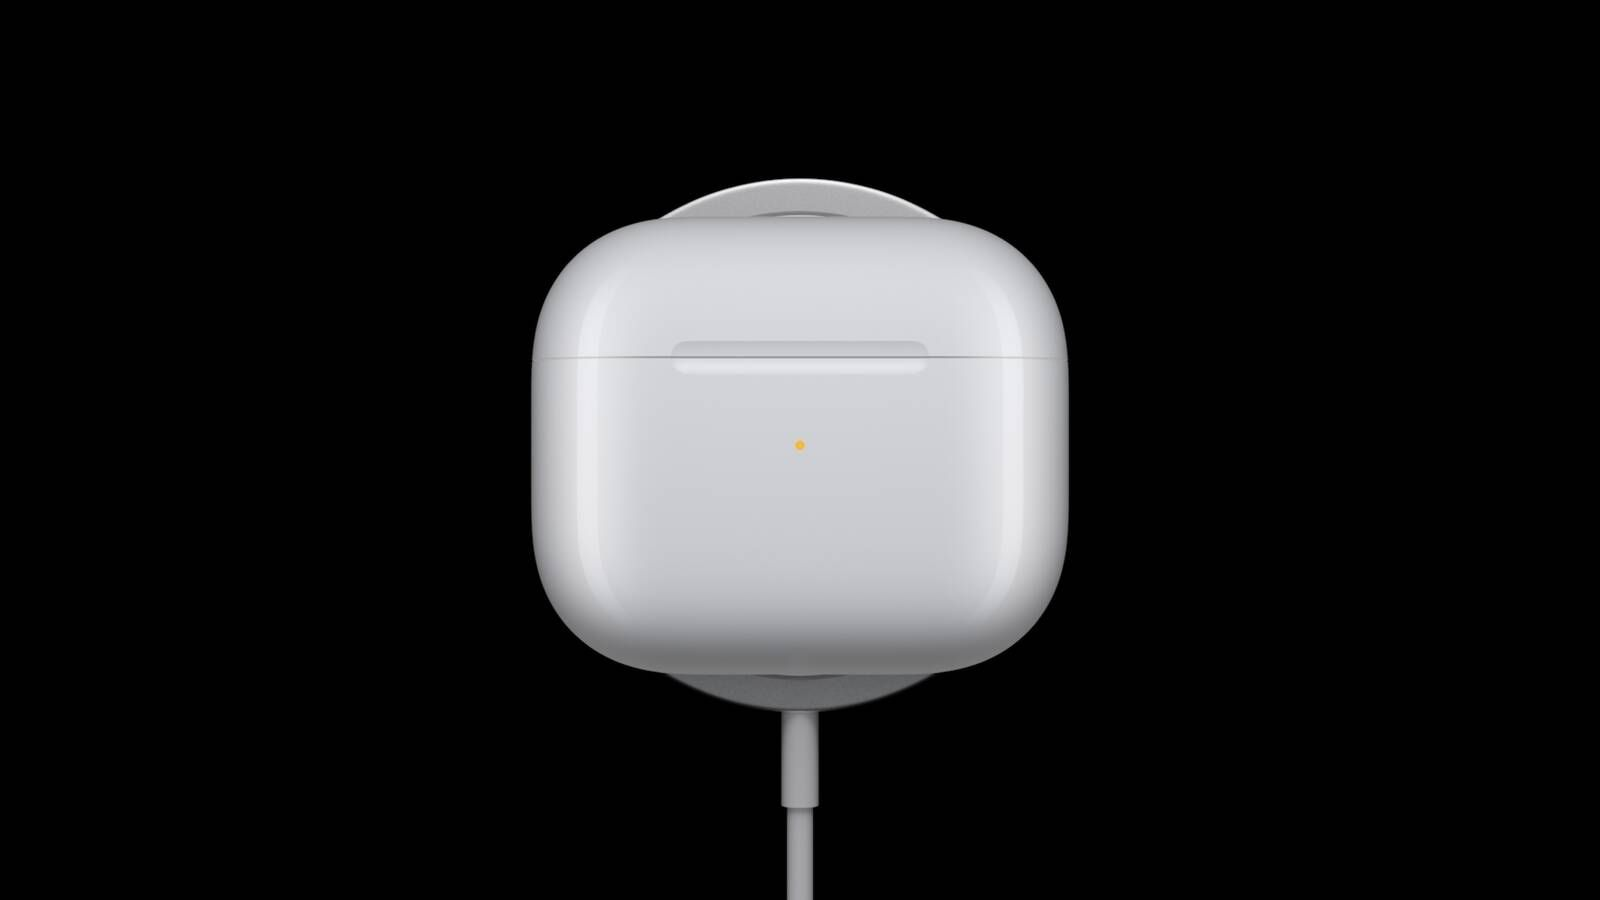 AirPods 3 Features First Water-Resistant AirPods Charging Case - MacRumors